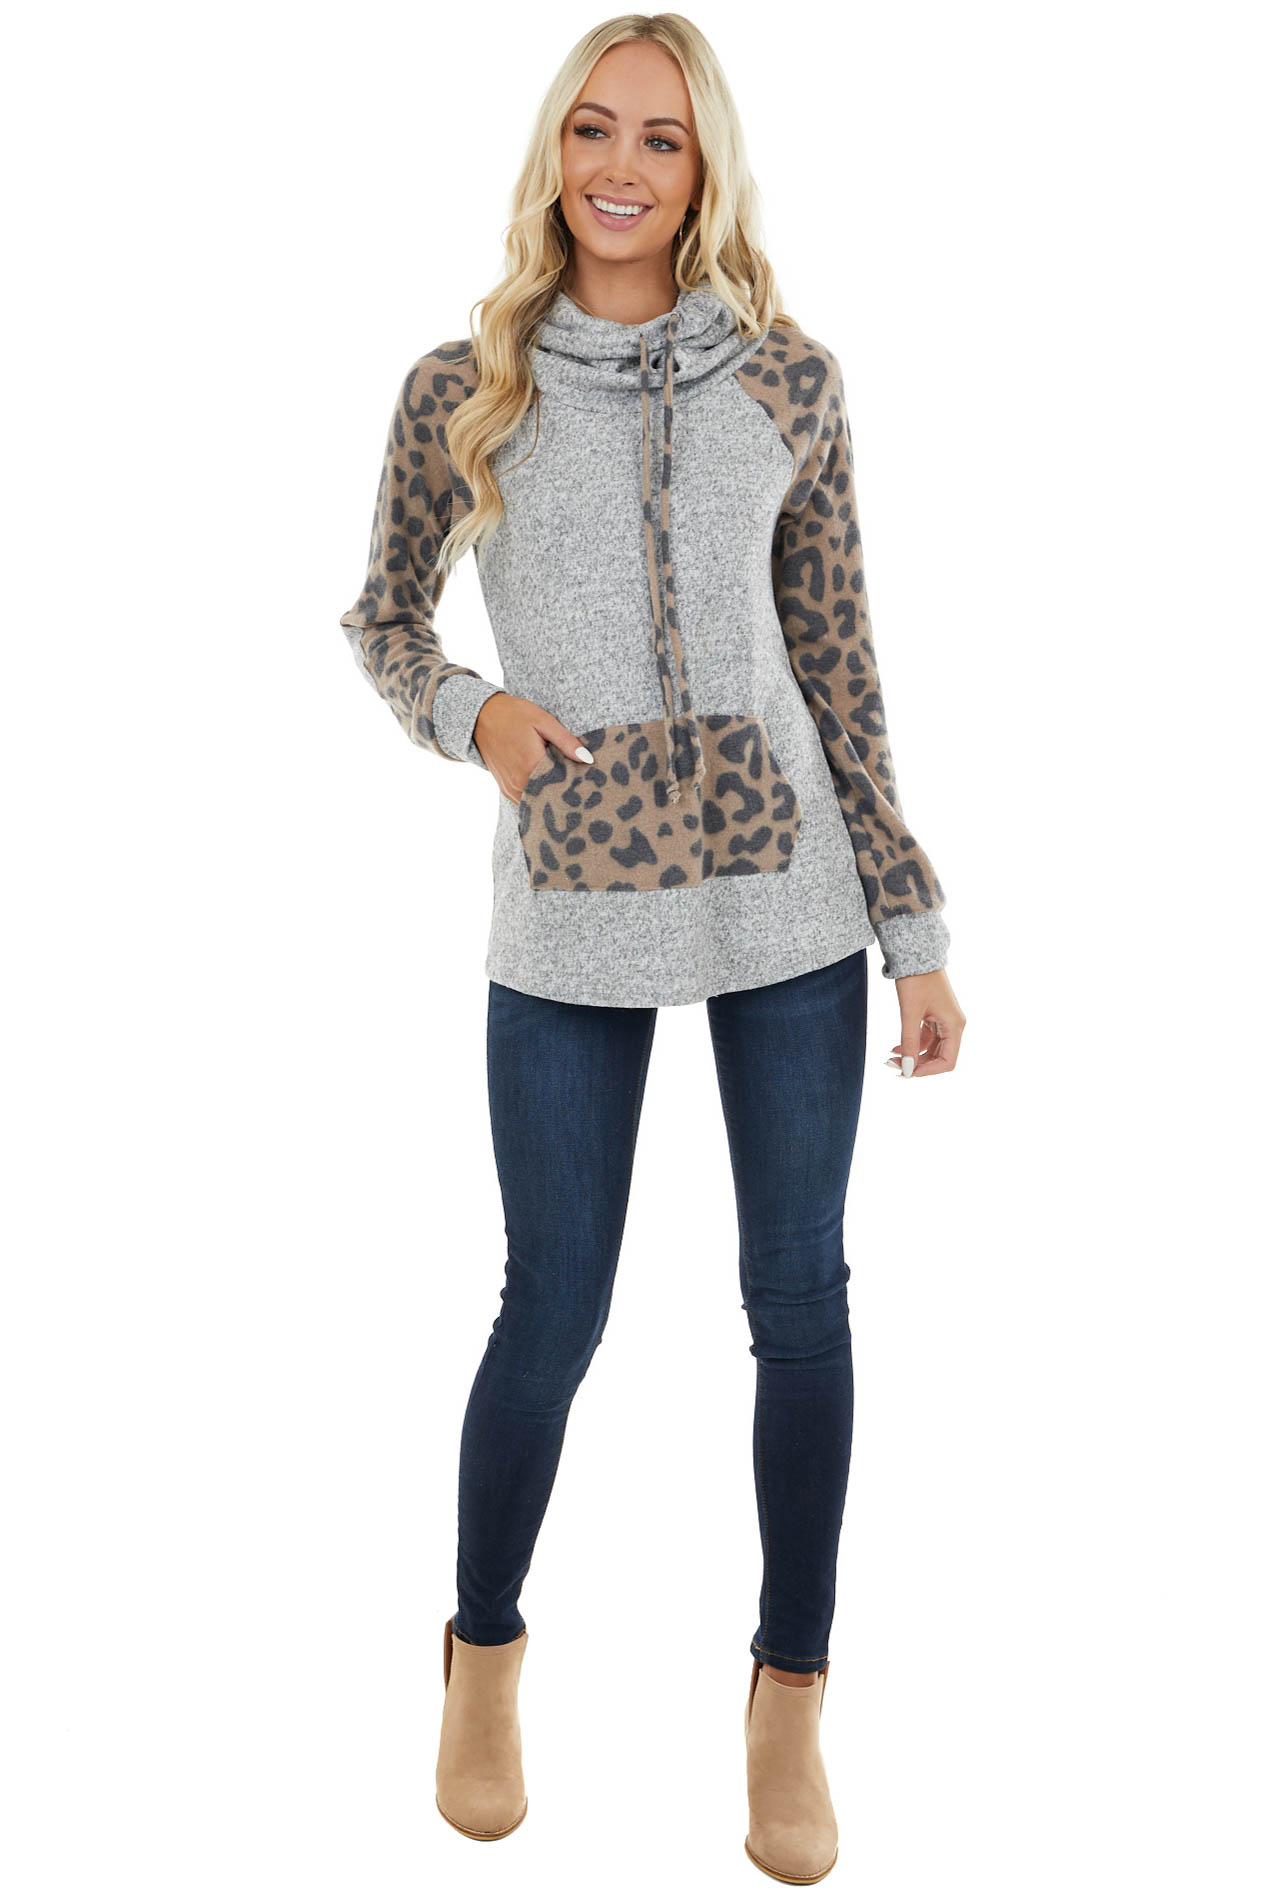 Dove Grey and Leopard Cowl Neck Top with Elbow Patch Details